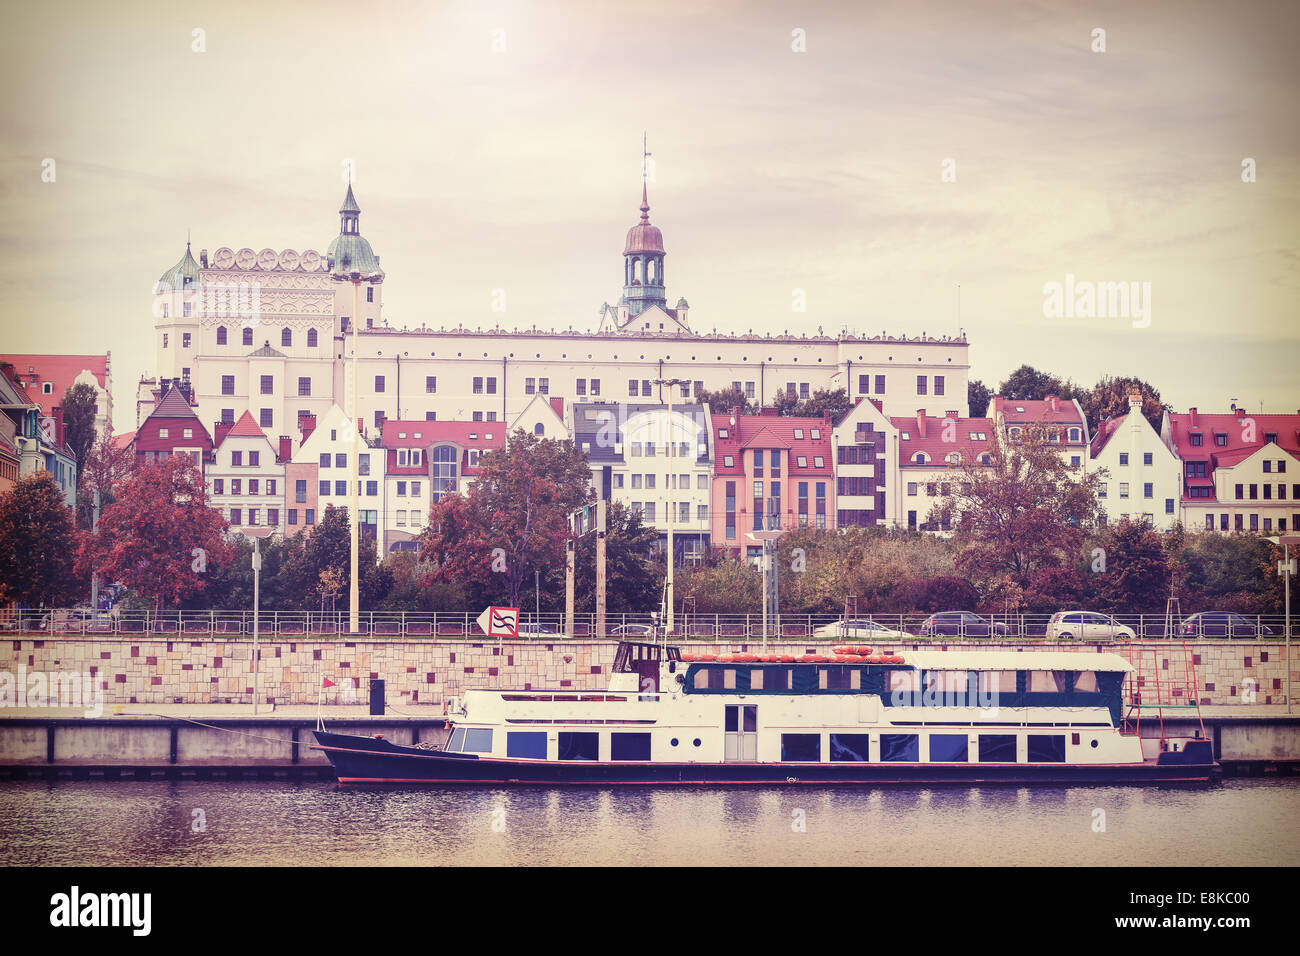 Retro vintage filtered photo of Szczecin riverside view, Poland - Stock Image